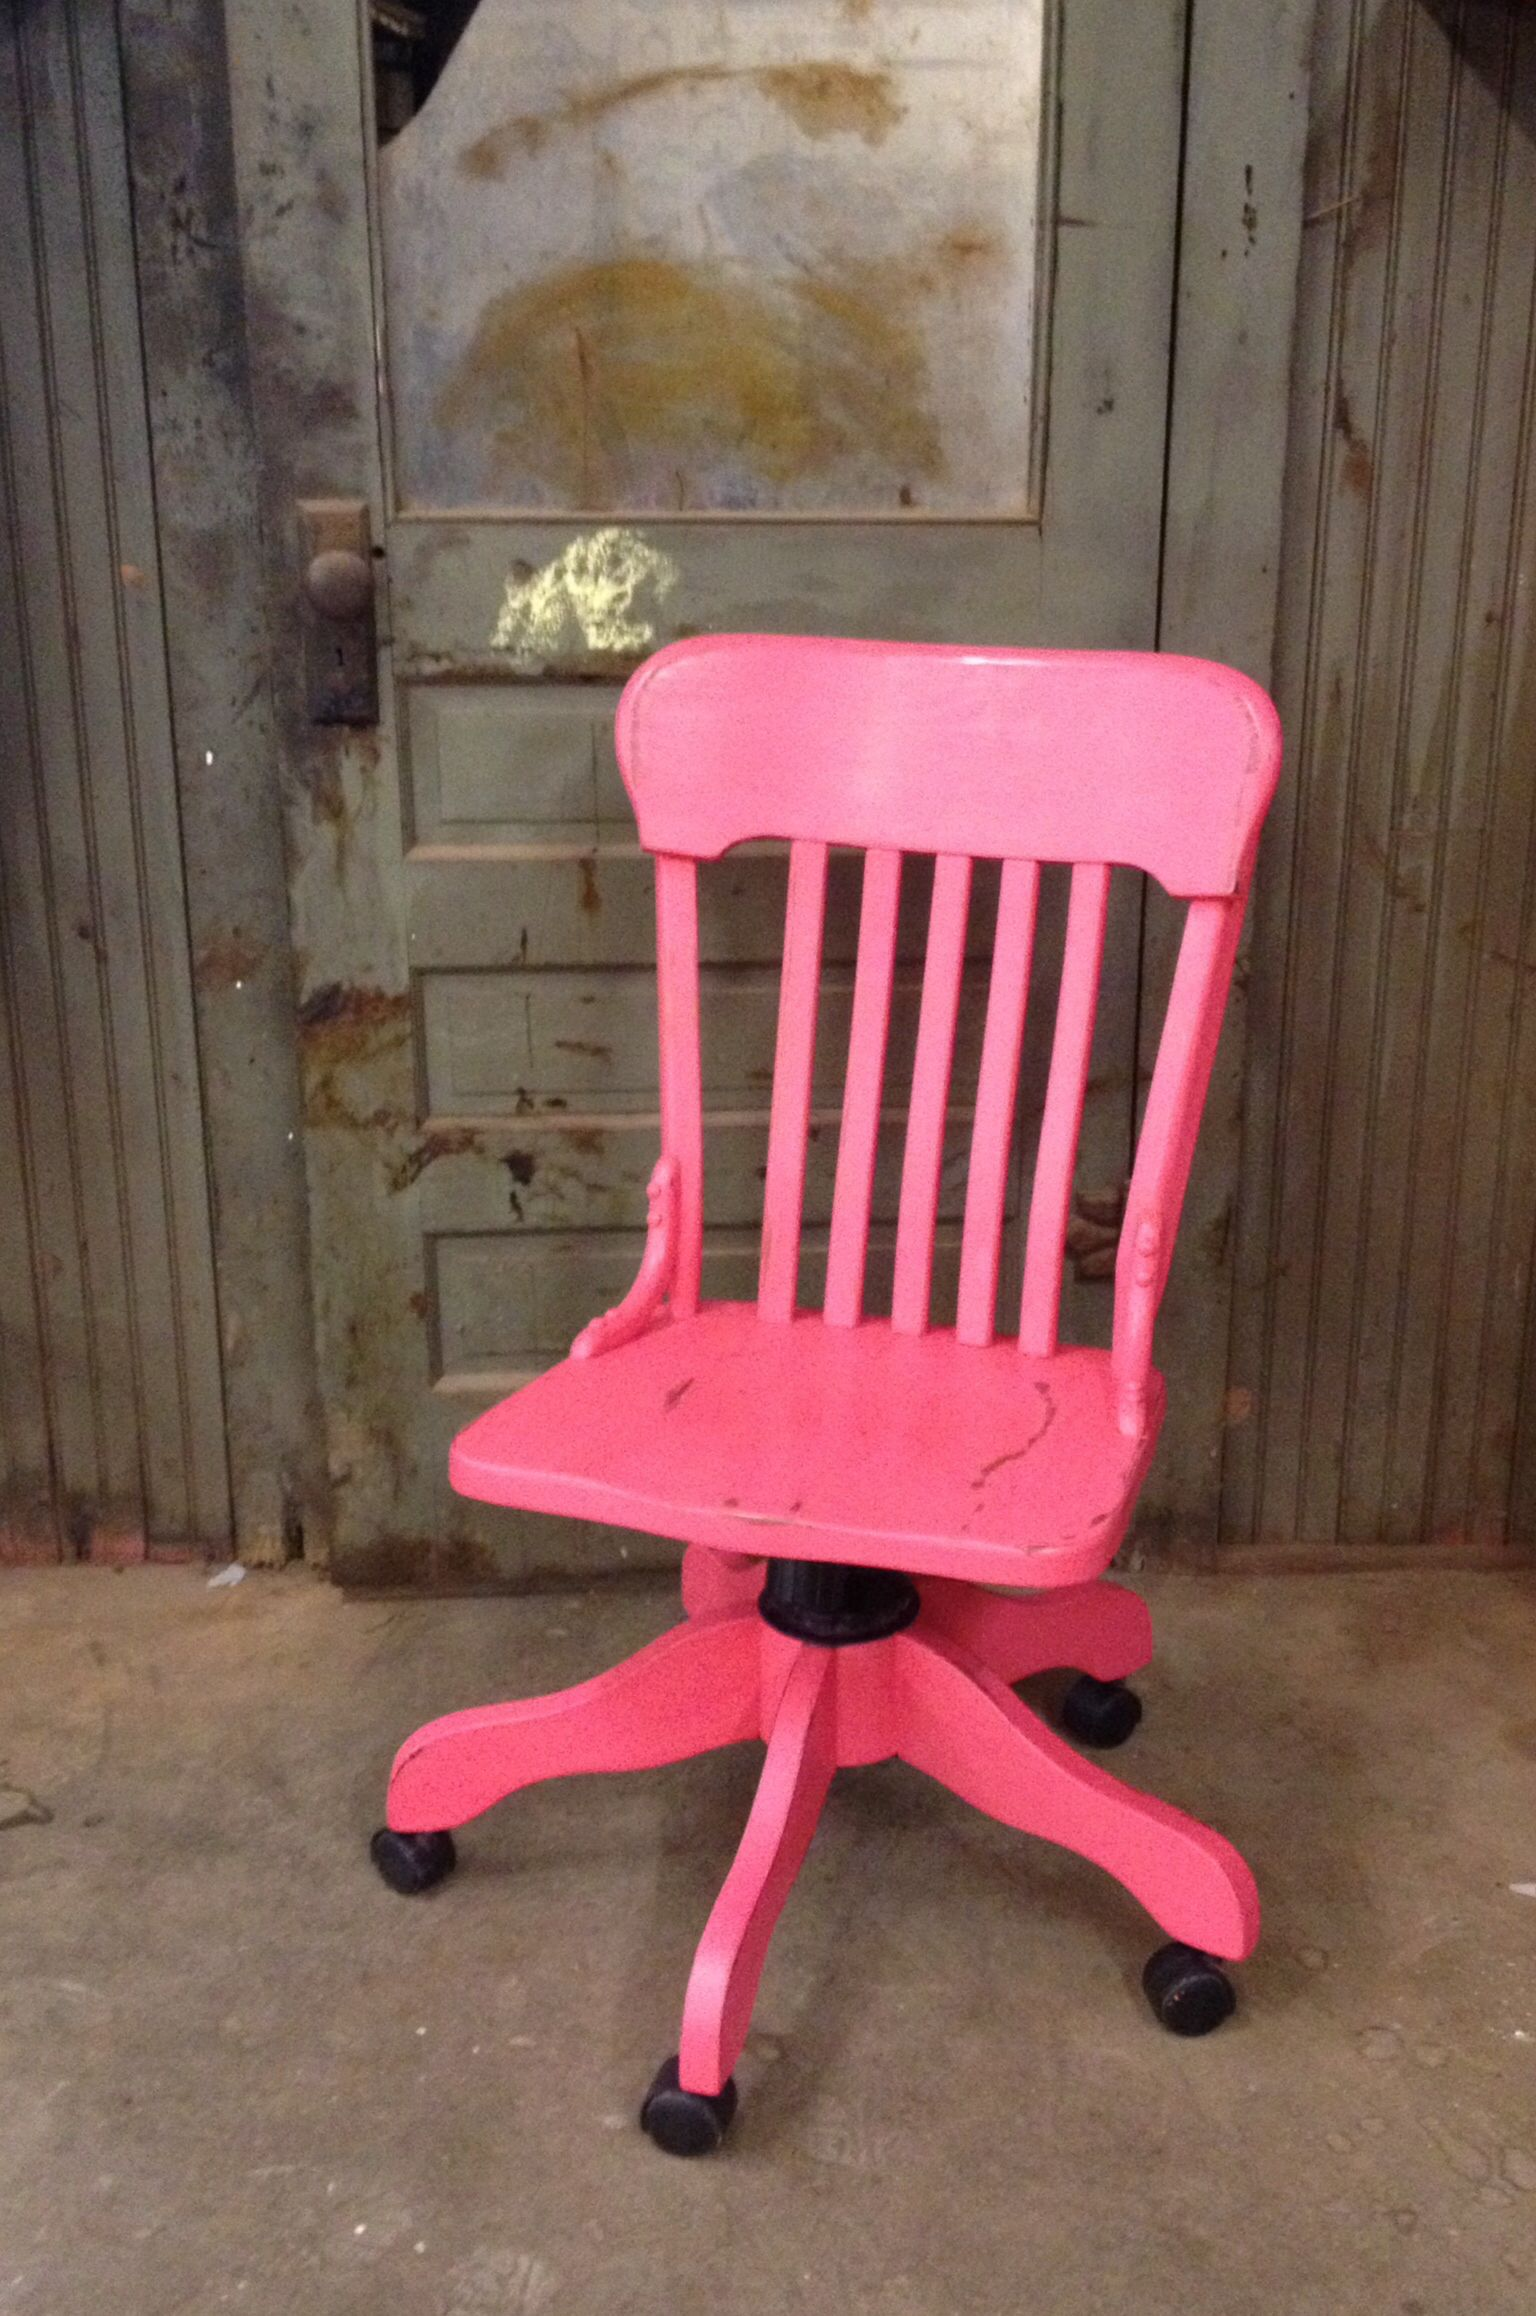 Marvelous Hot Pink Wood Office Chair Done In Apc Mommas Lipstick Gamerscity Chair Design For Home Gamerscityorg